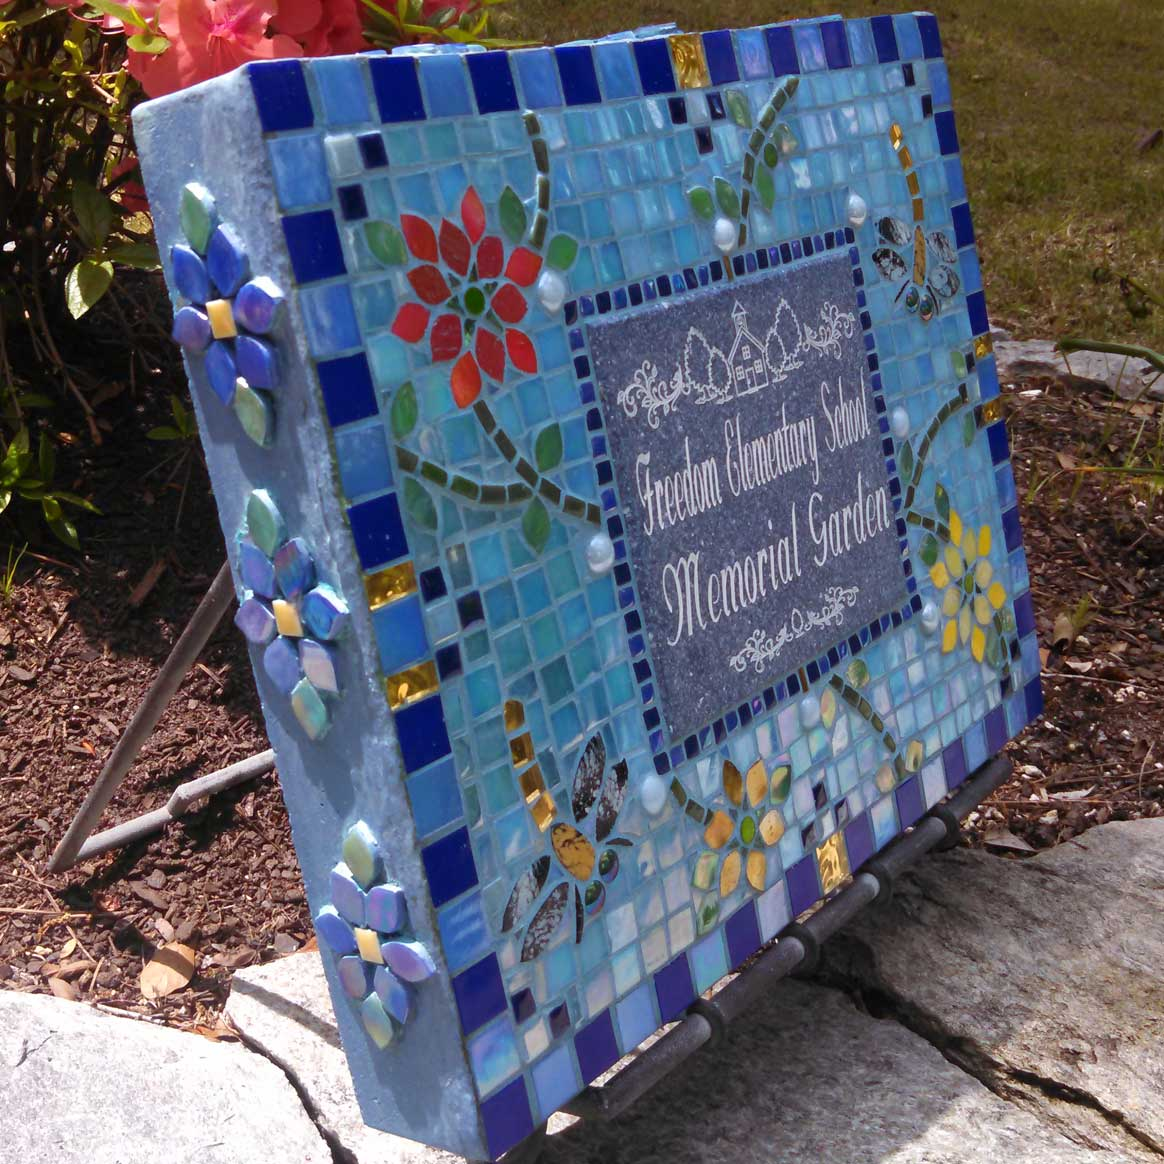 Mosaic Memorial Garden Art Stone of Freedom Elementary School Memorial Garden Sign by Water's End Studio Artist Linda Solby